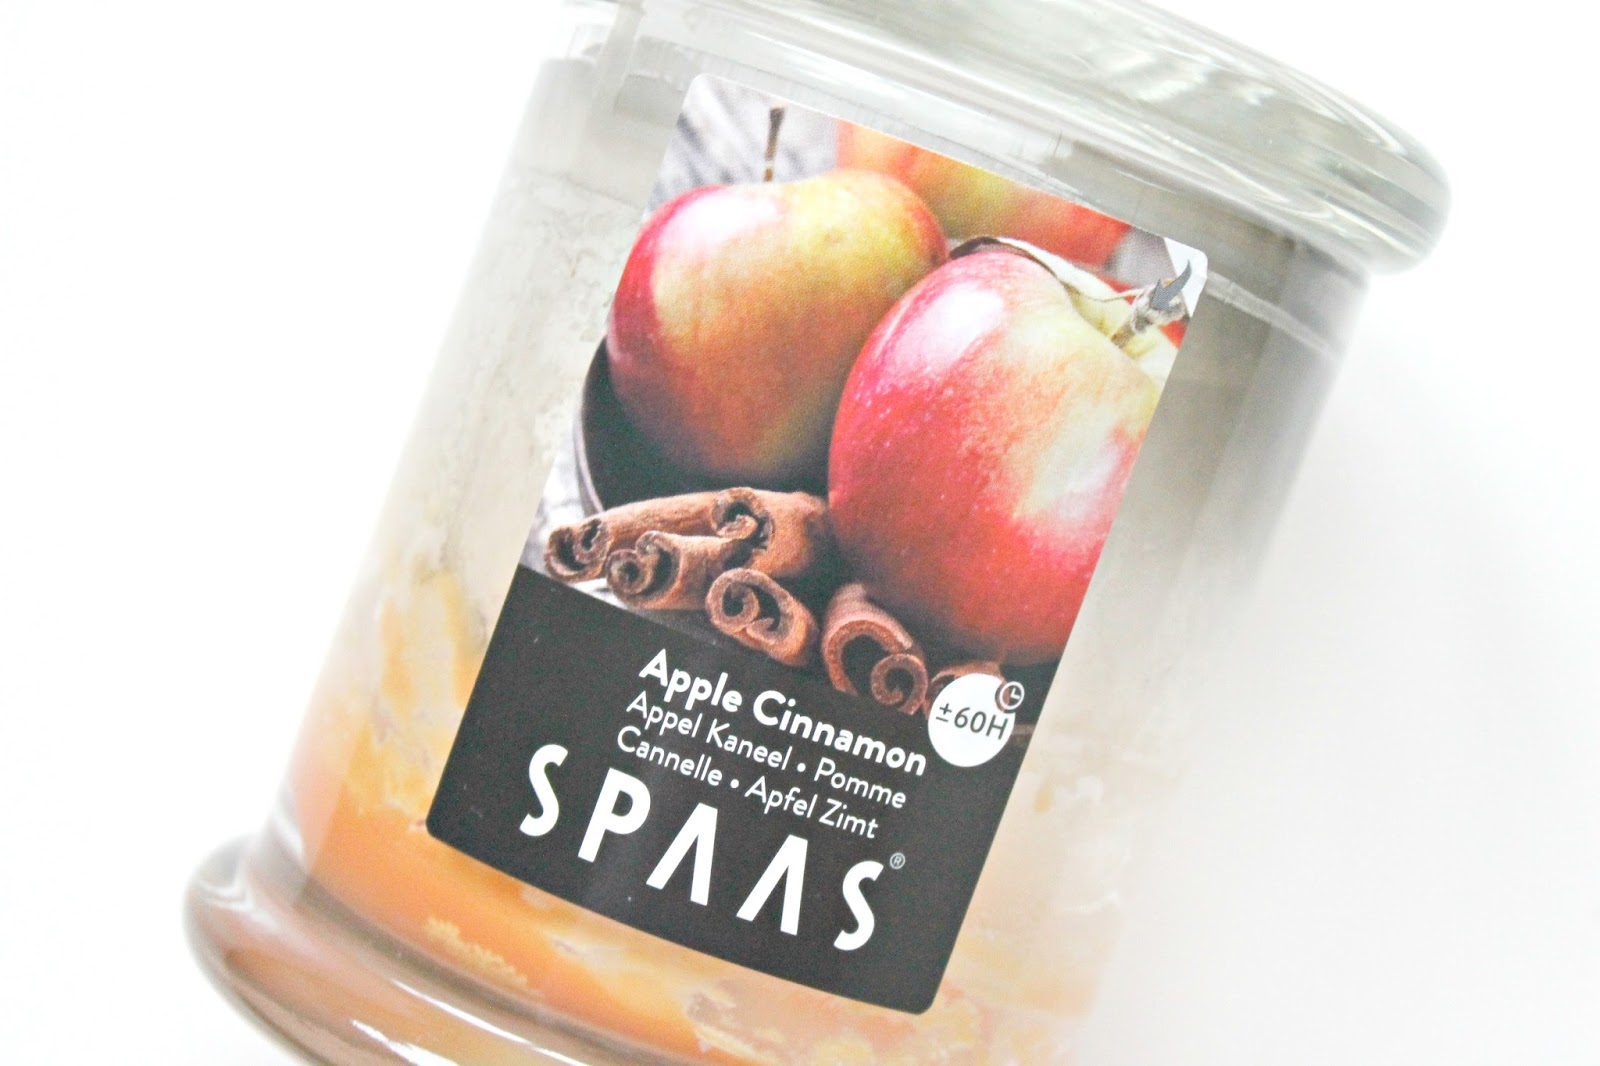 spaas geurkaars apple cinnamon appel kaneel